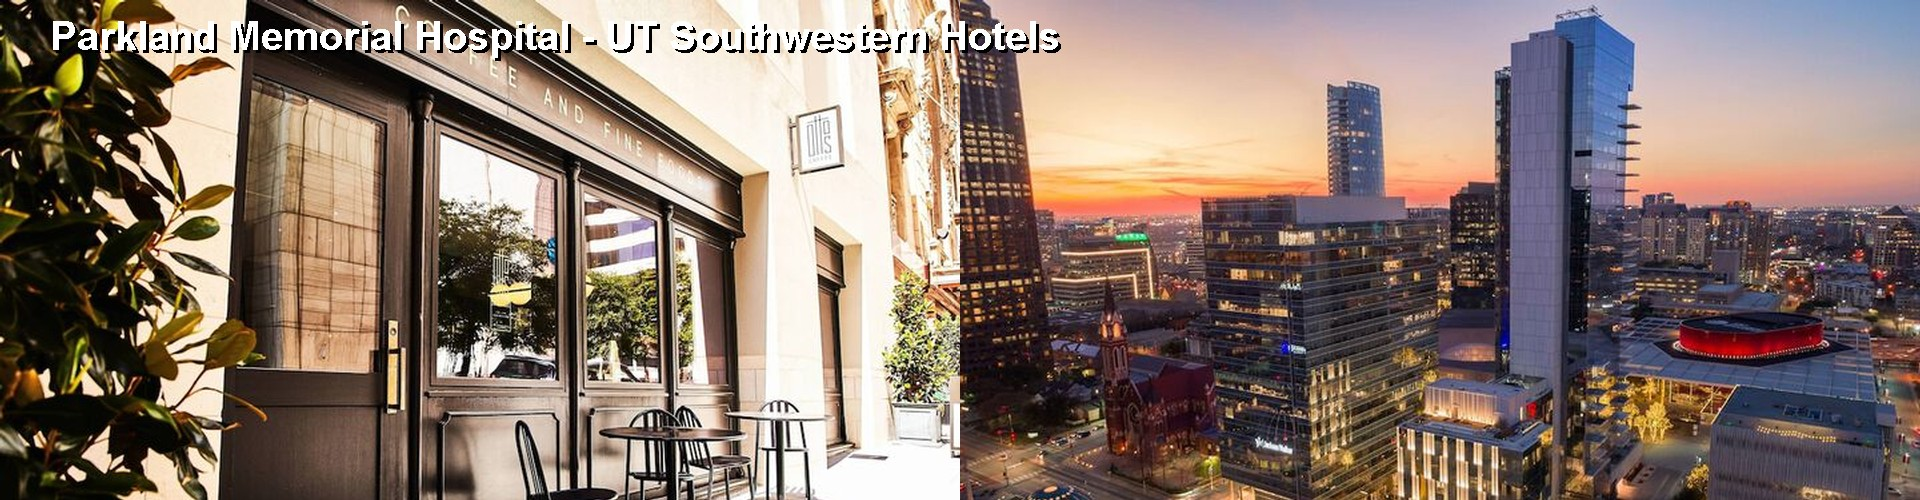 5 Best Hotels Near Parkland Memorial Hospital Ut Southwestern